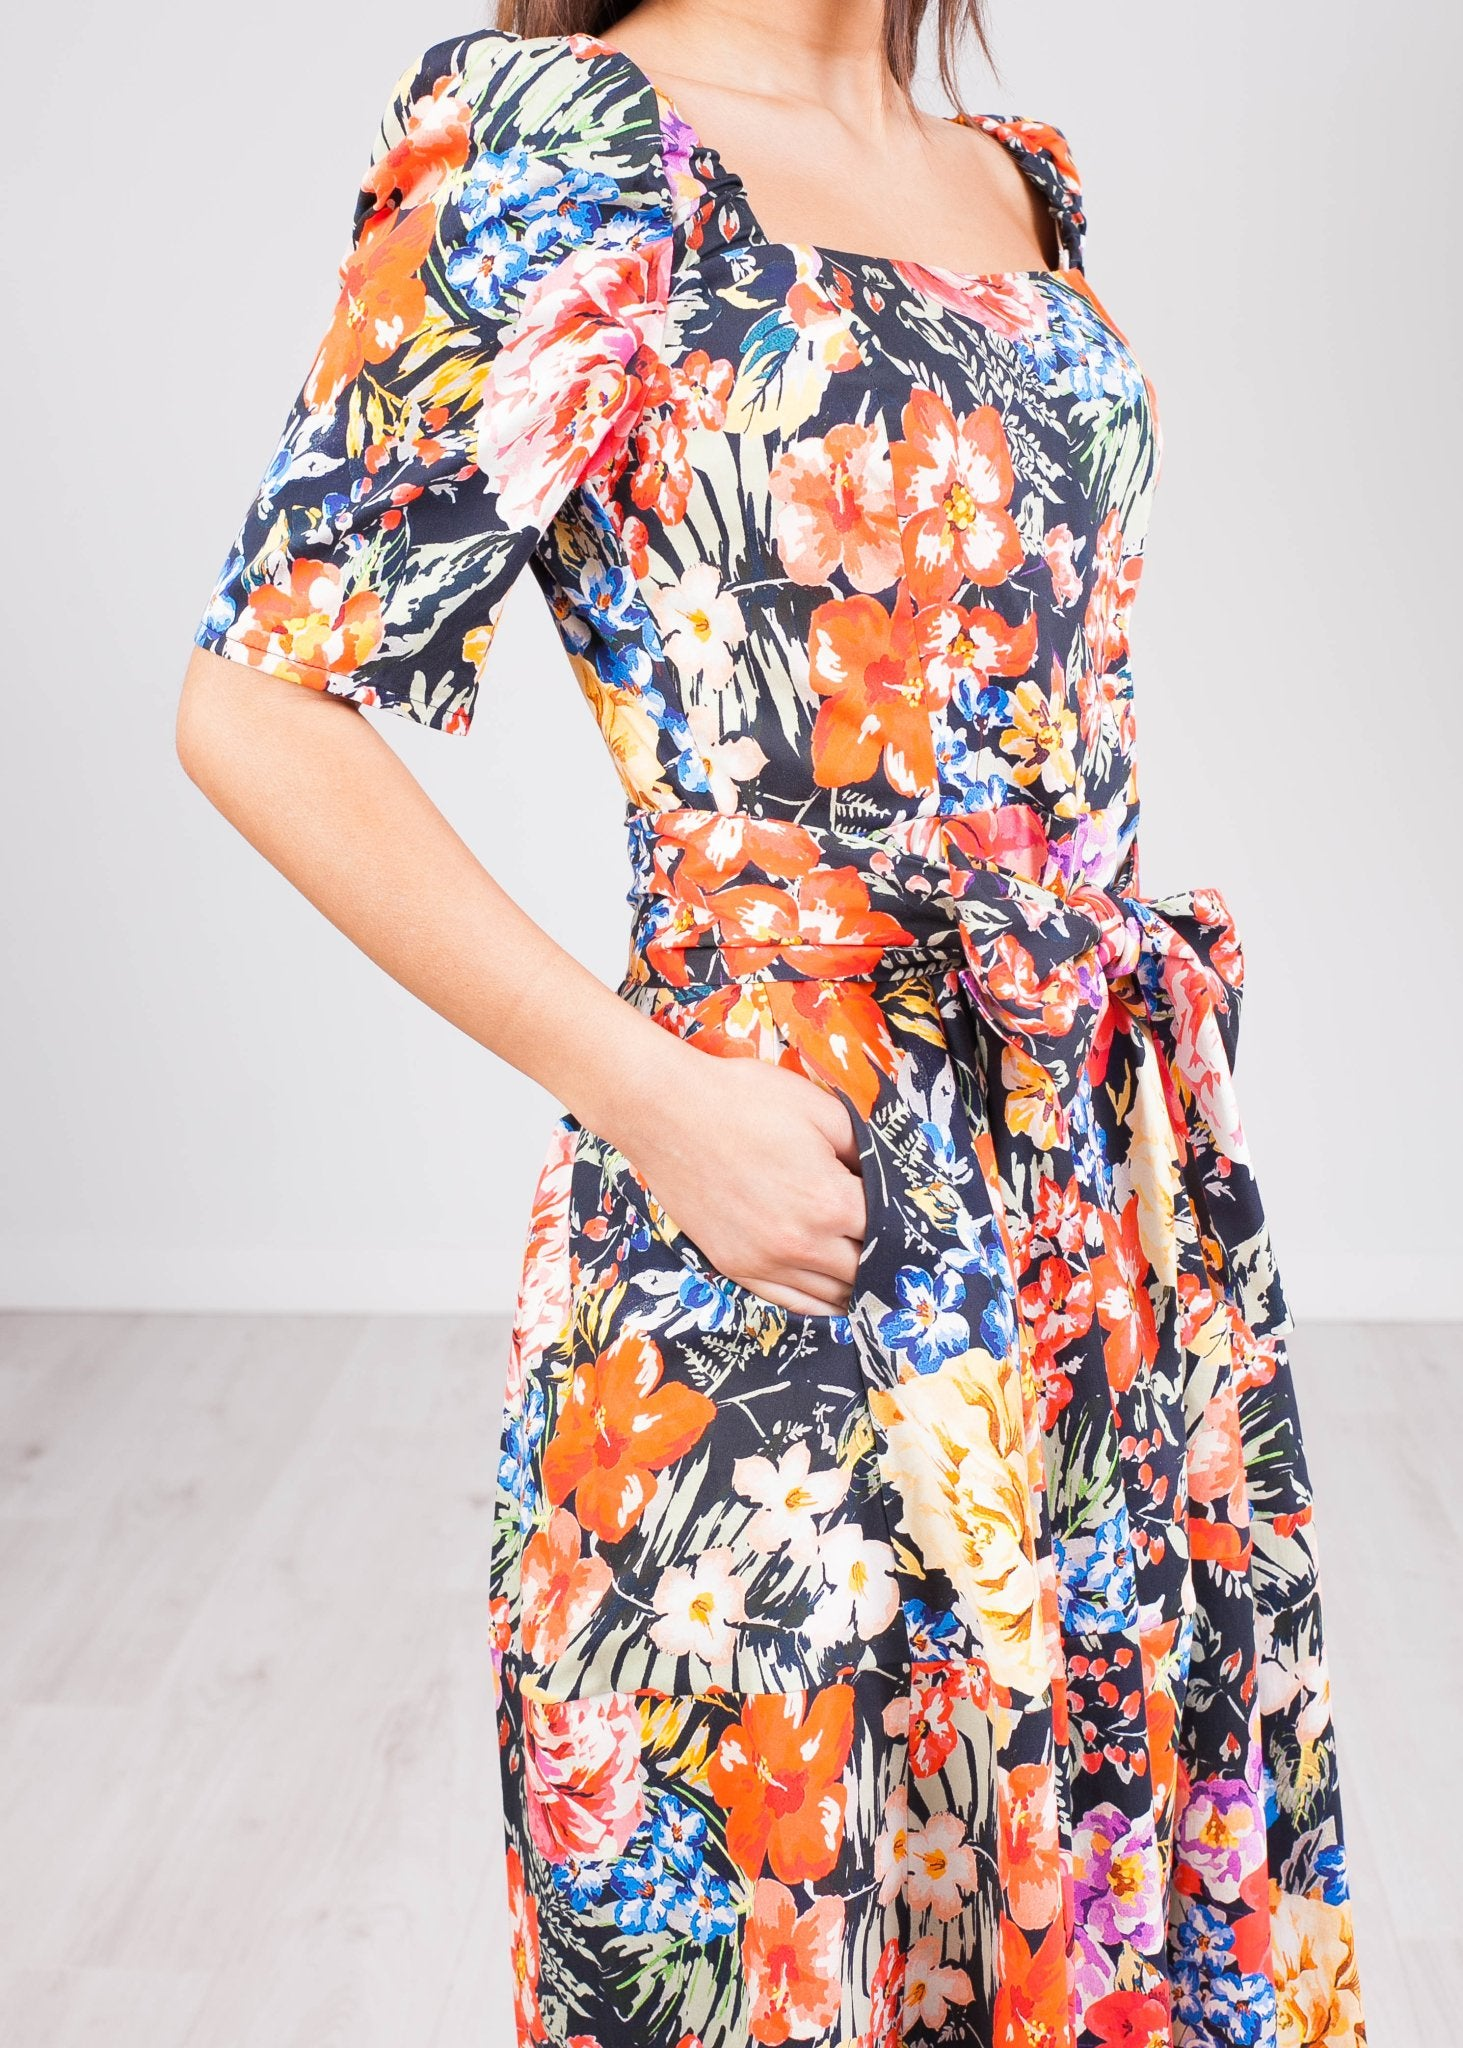 Savannah Floral Dress - The Walk in Wardrobe